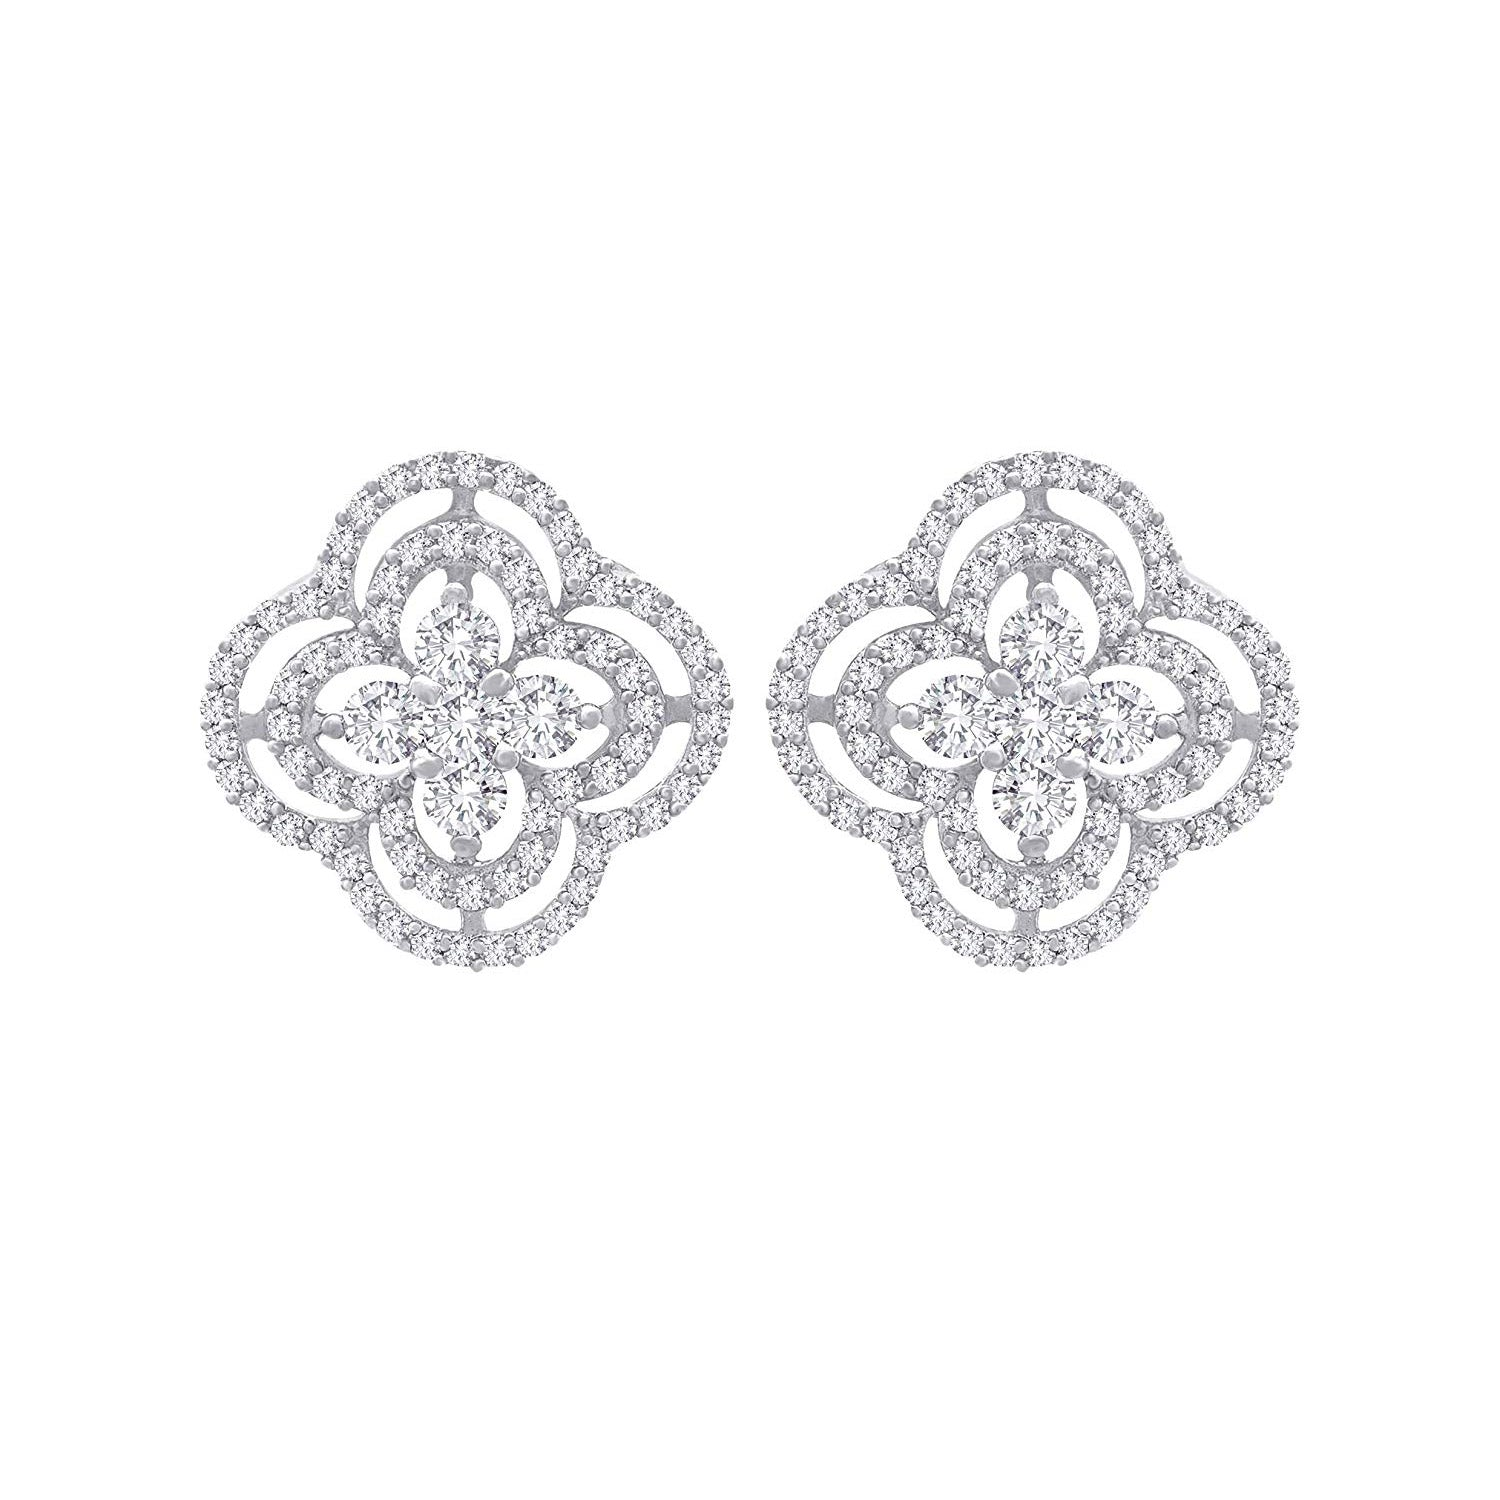 JFL- Fusion Ethnic One Gram Gold Plated Cz American Diamond Designer Stud Earrings for Women & Girls.